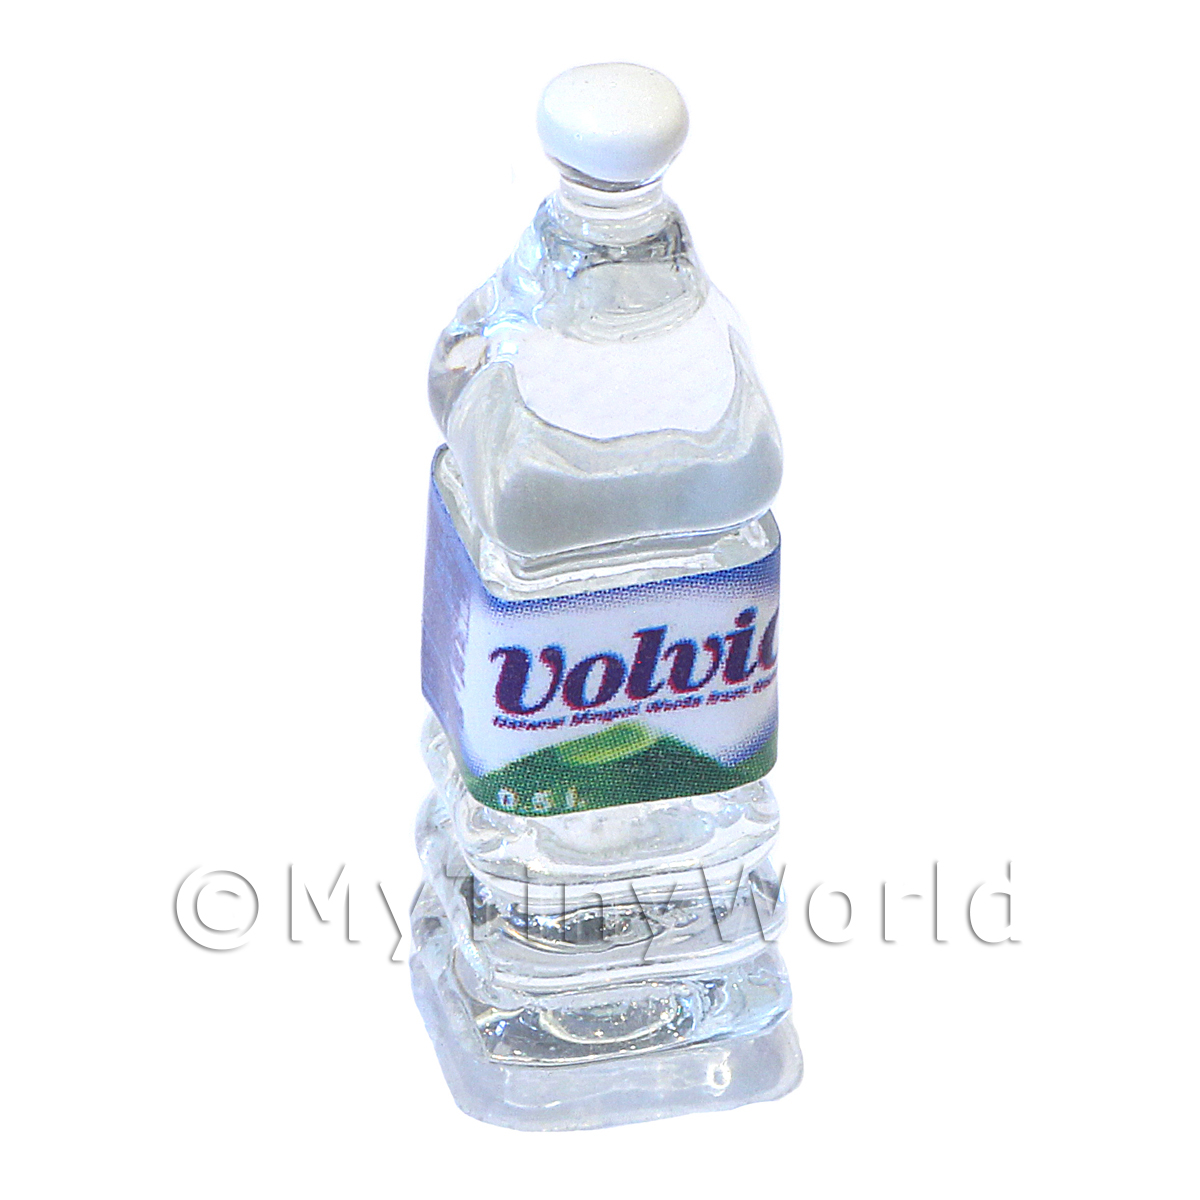 Dolls House Miniature Large Volvic Brand Square Water Bottle